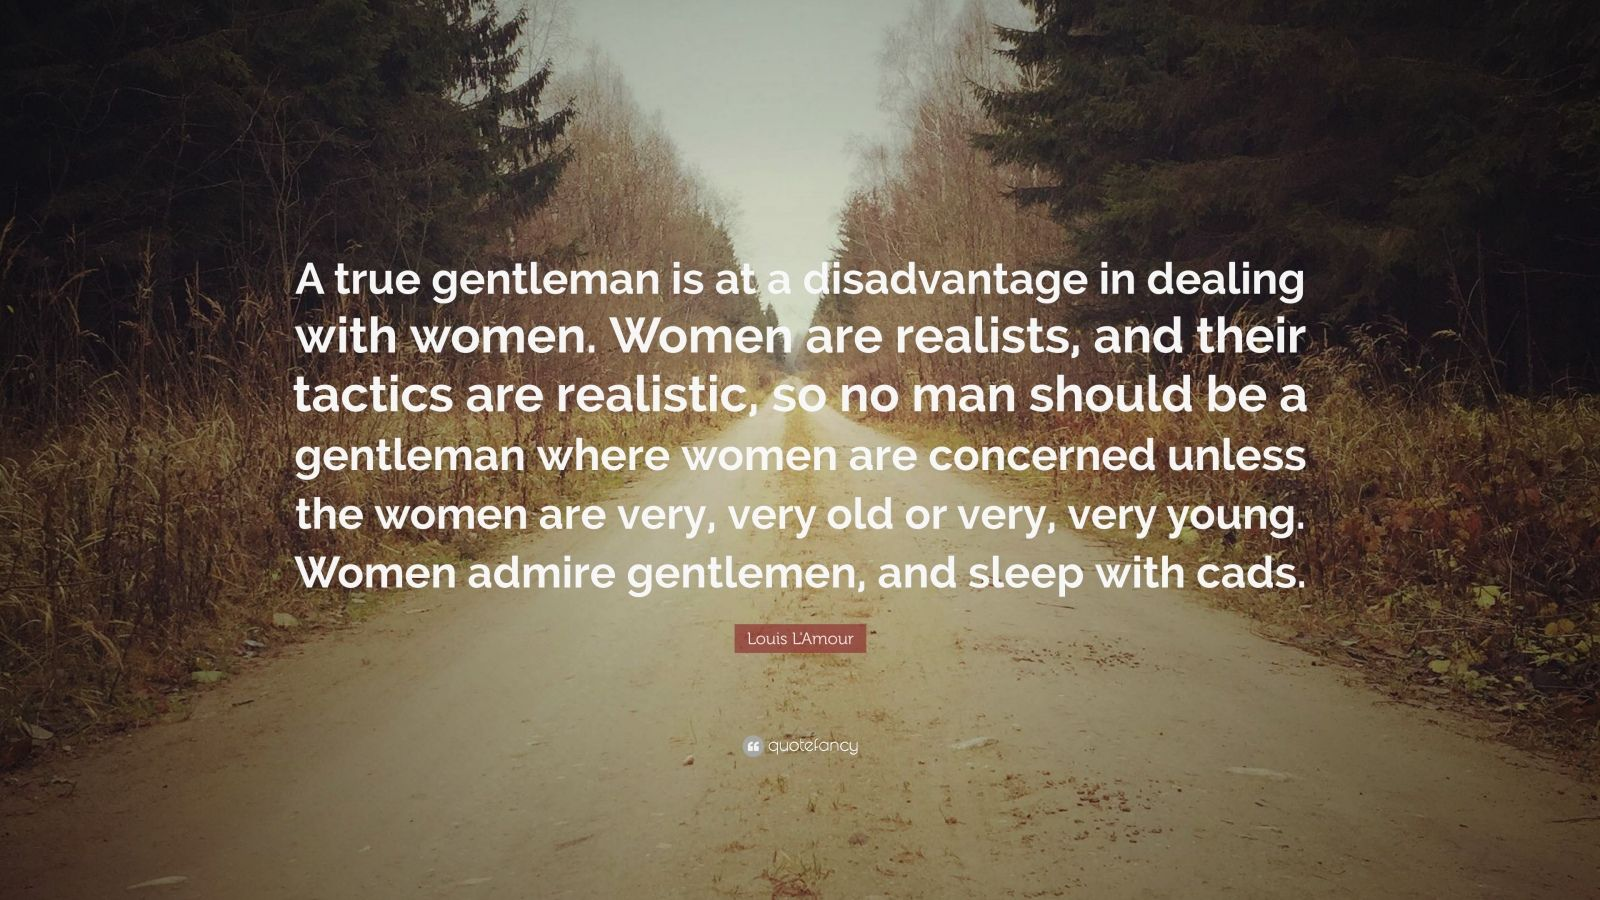 Steve Jobs Wallpaper Quotes Louis L Amour Quote A True Gentleman Is At A